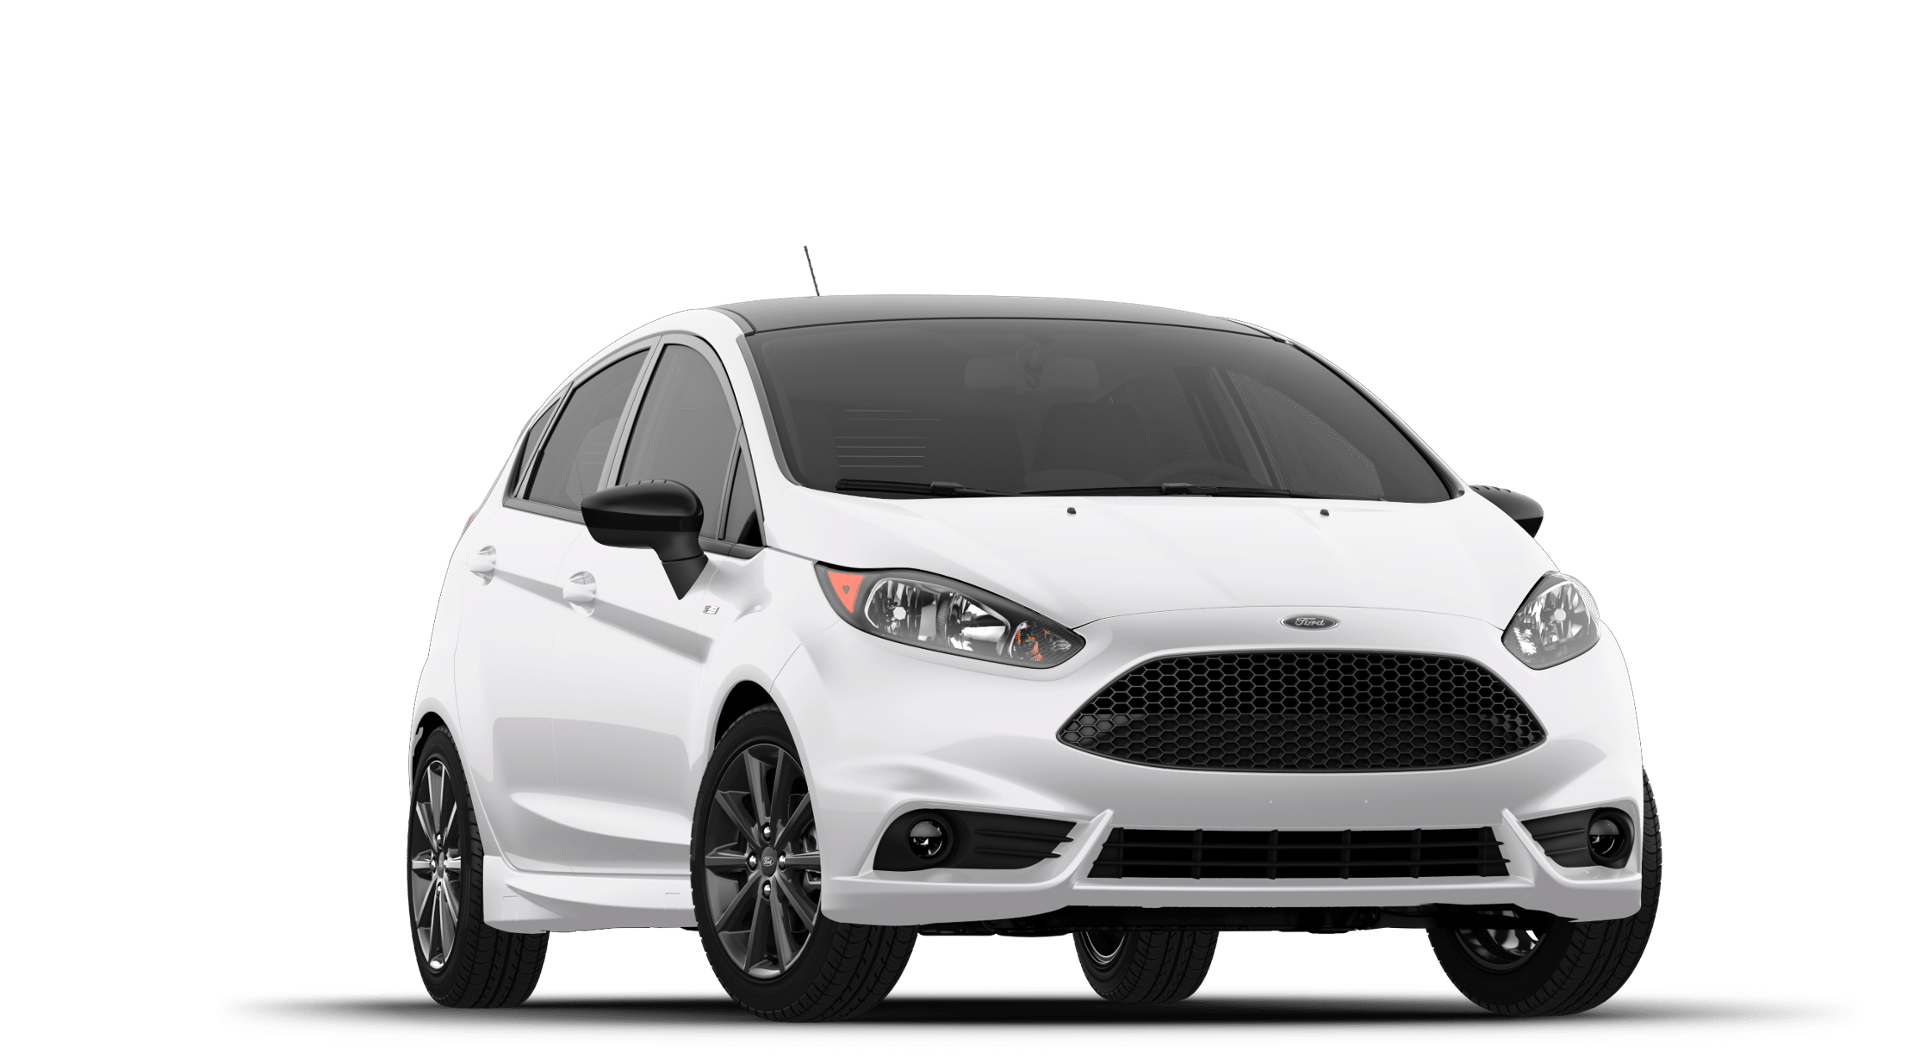 Test Drive A 2019 Ford Fiesta At Galpin In Los Angeles